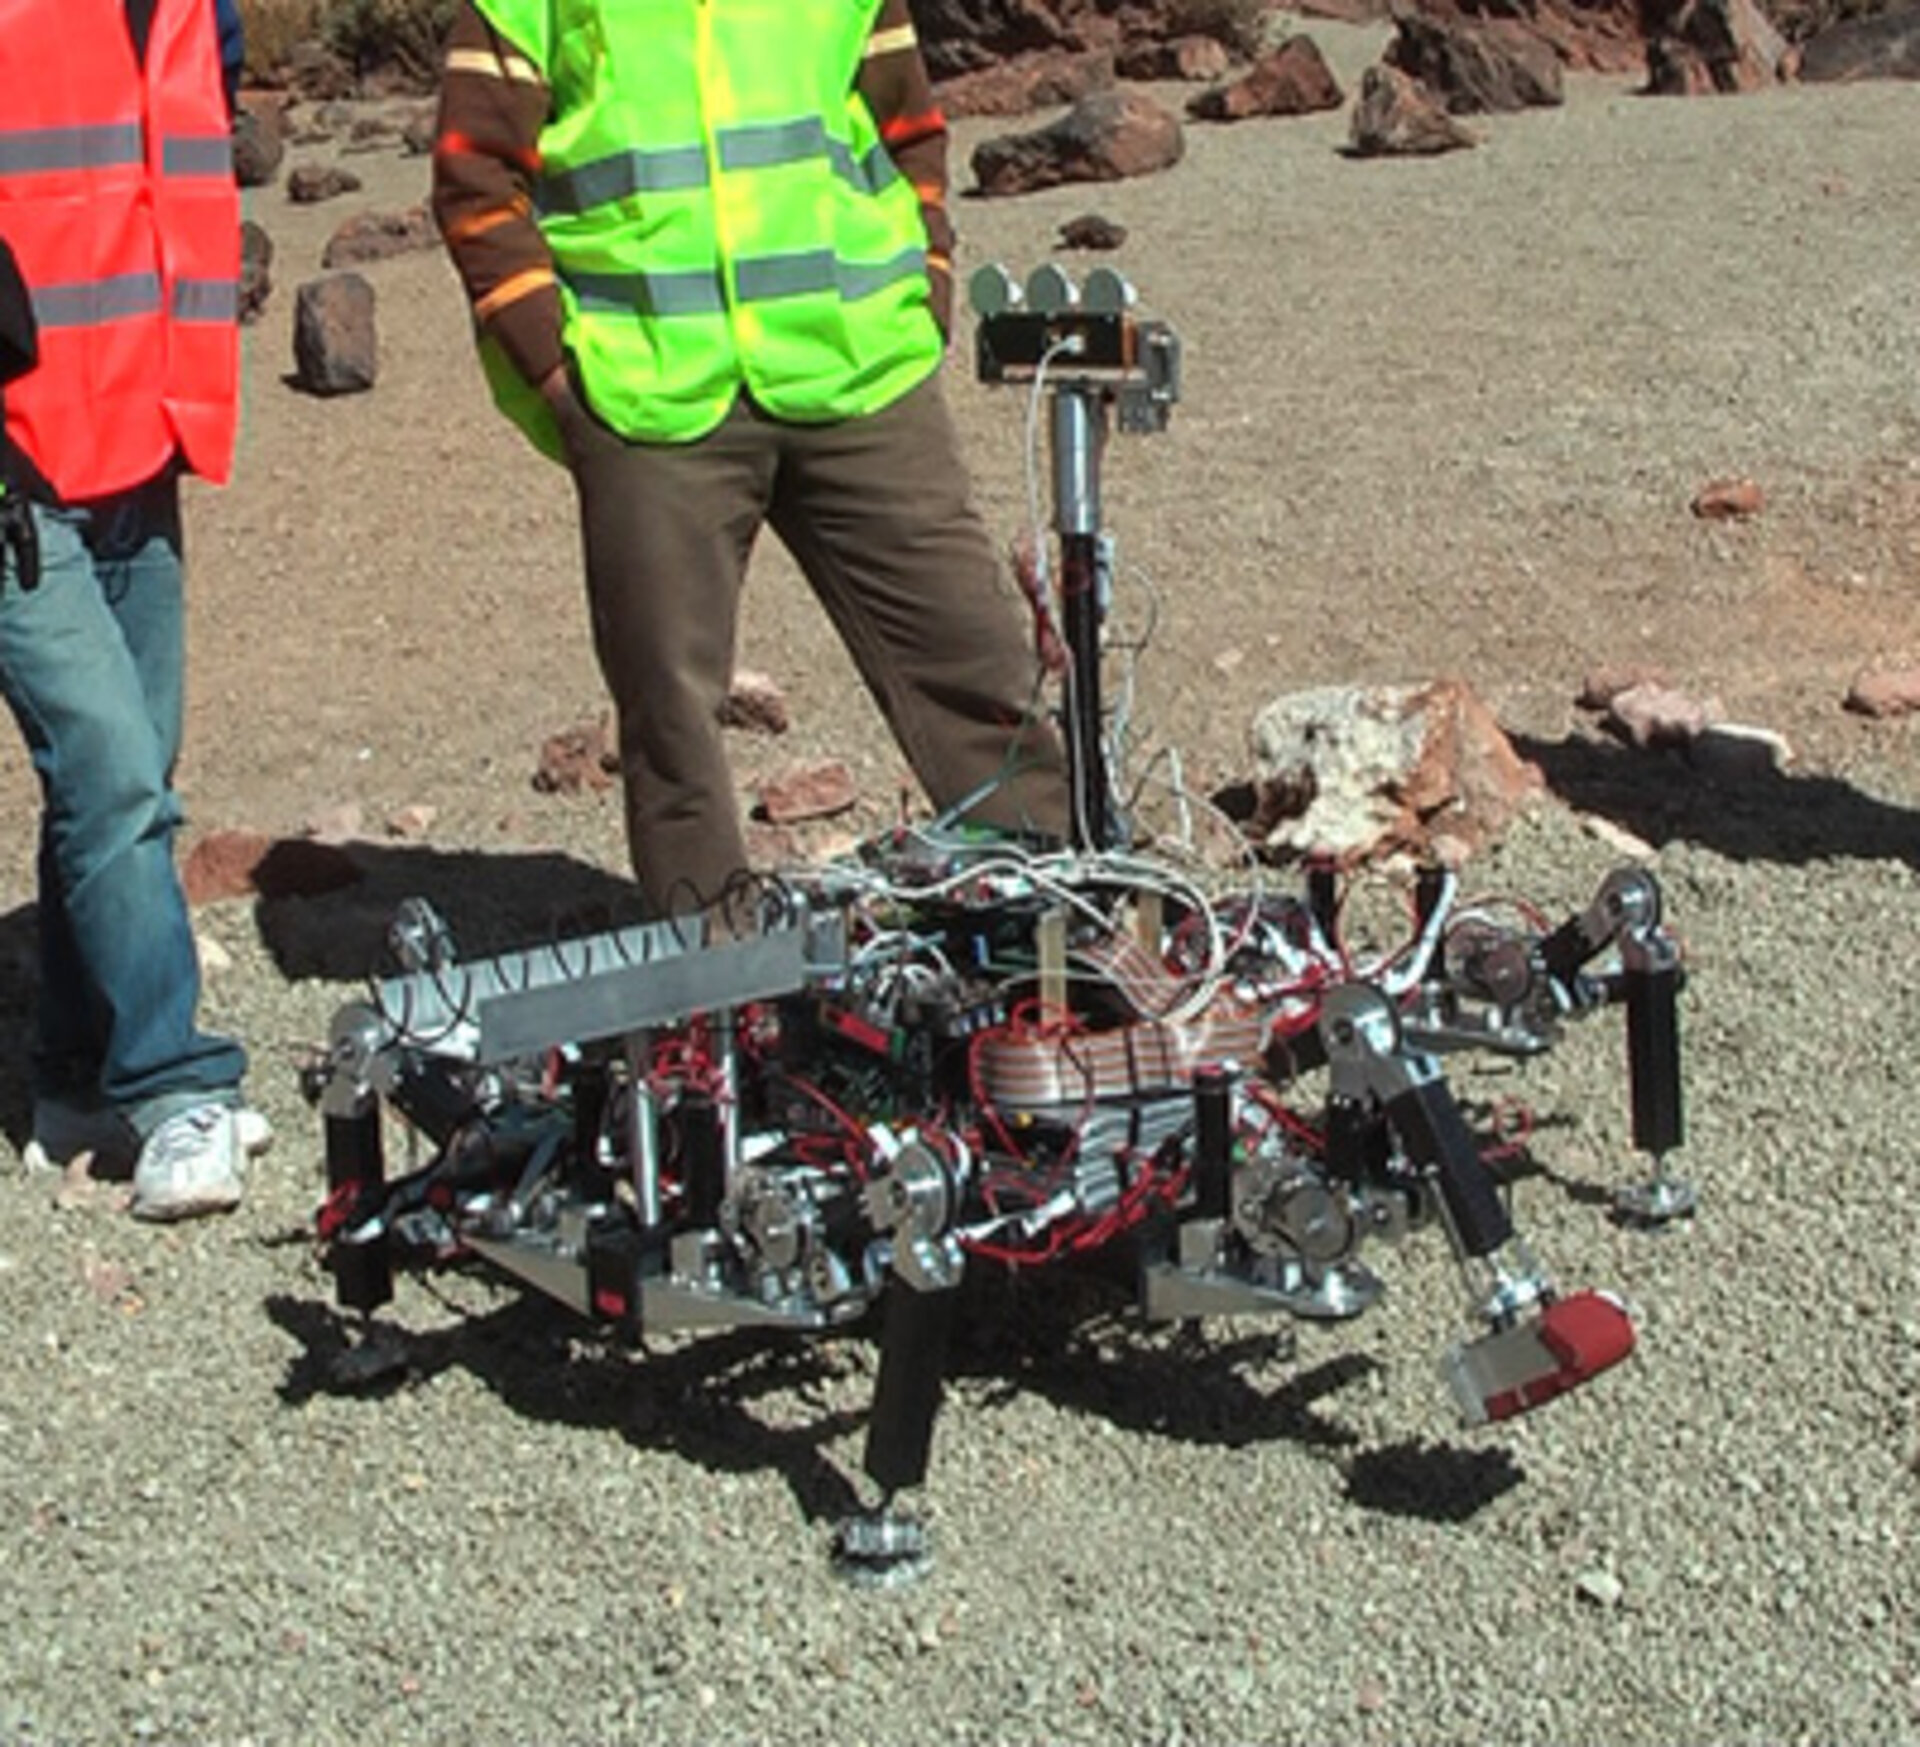 This walking robot was one of the most advanced - and also fragile - robots in the competition.